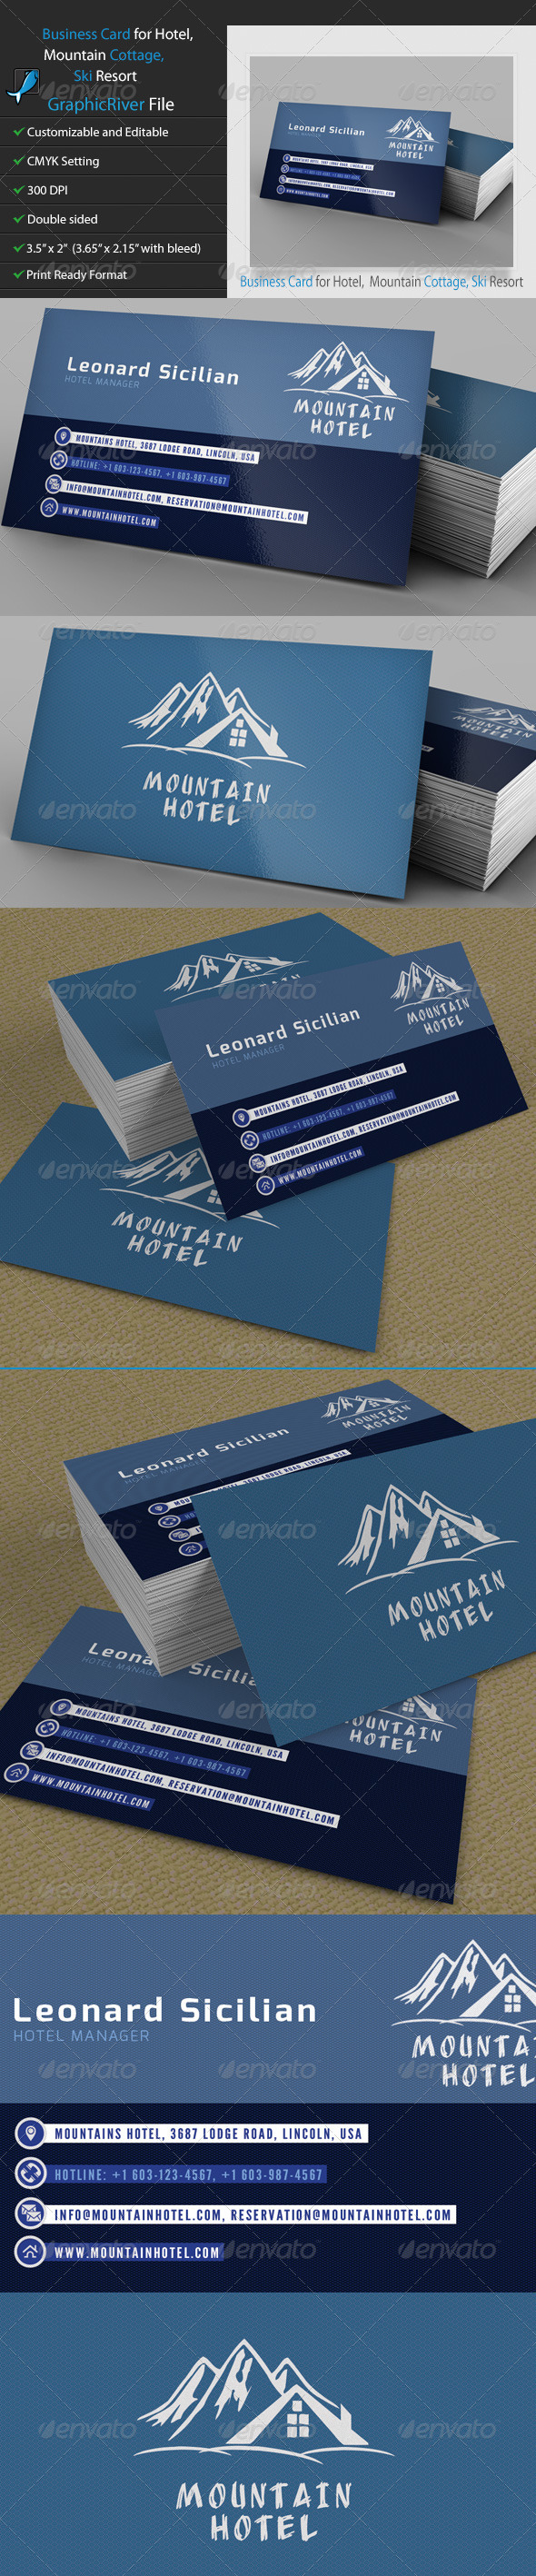 GraphicRiver Business Card for Hotel Mountain Cottage Ski 5244815